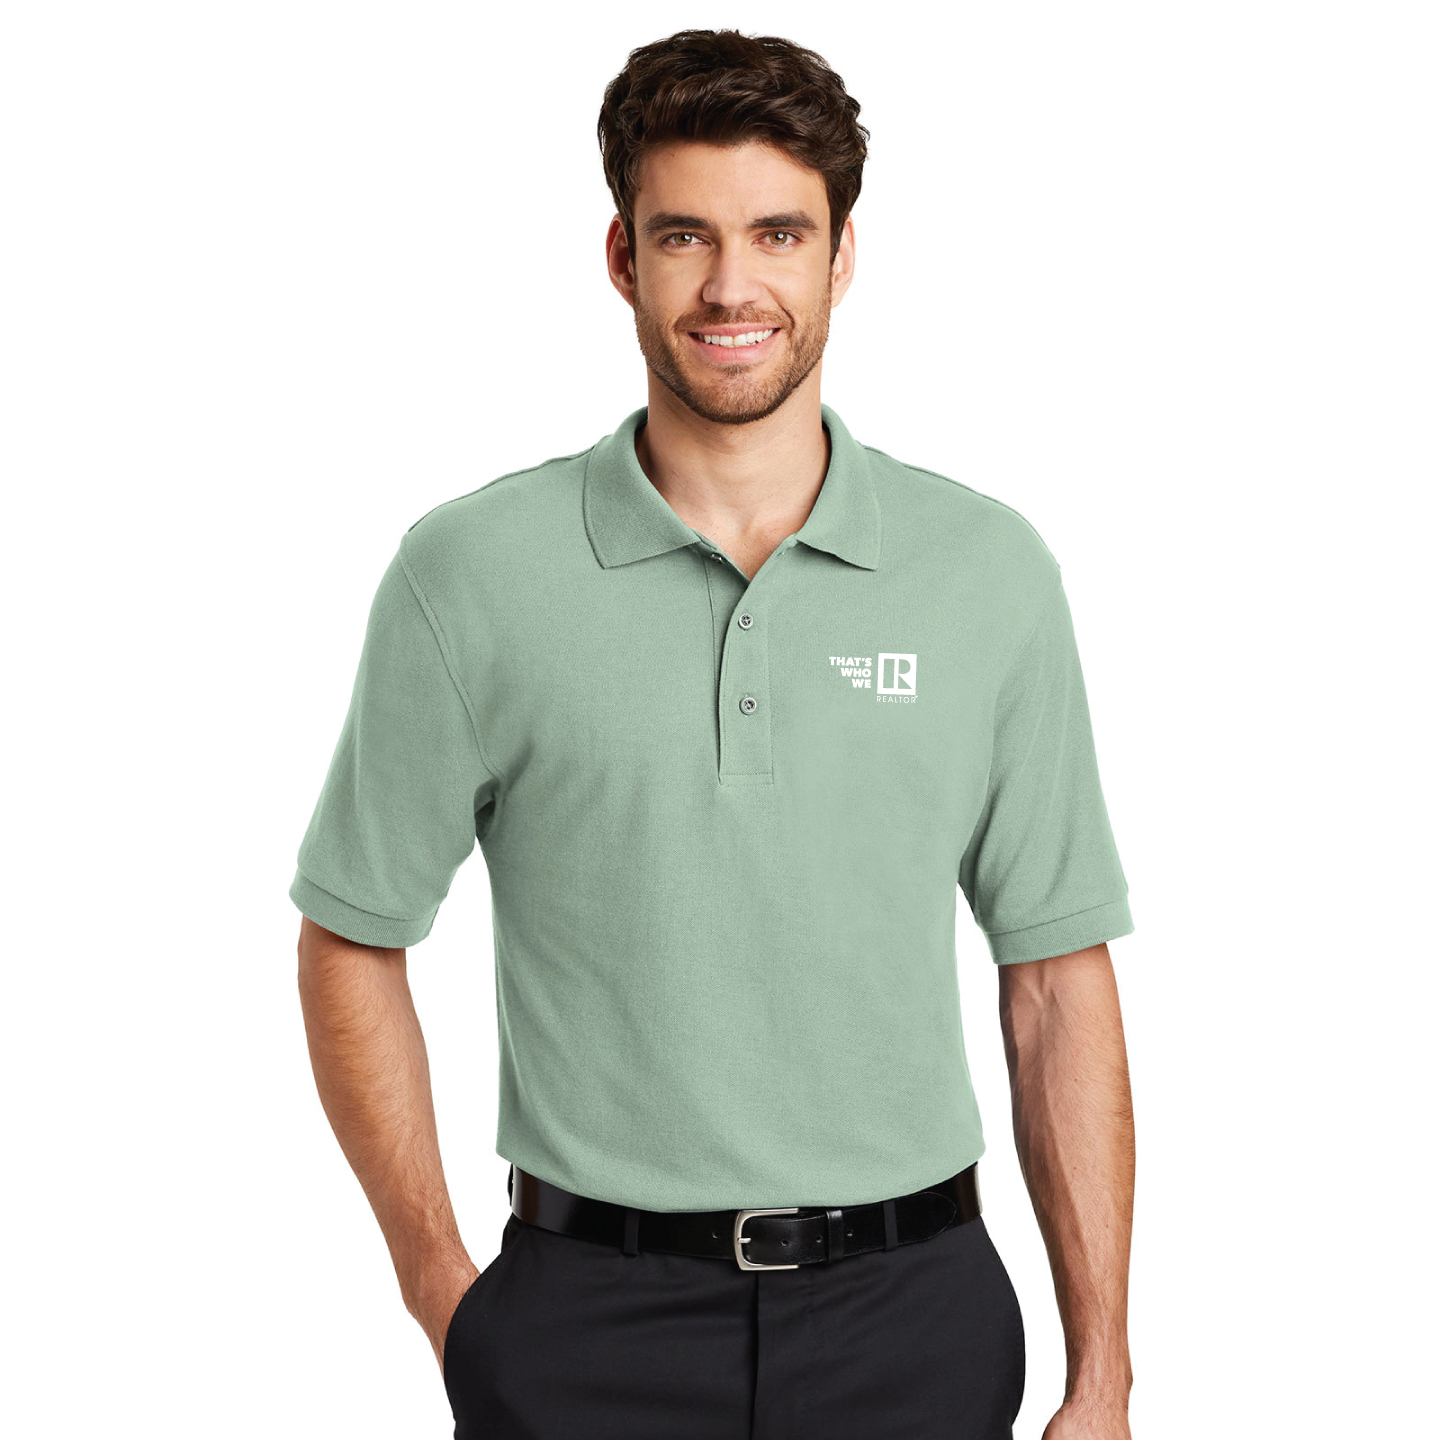 """Thats Who We R"" Mens Pique Polo Shirt Twwr,Thats,Whos,Ares,Golfs, Shirts, Collared, Polos, Plackets"